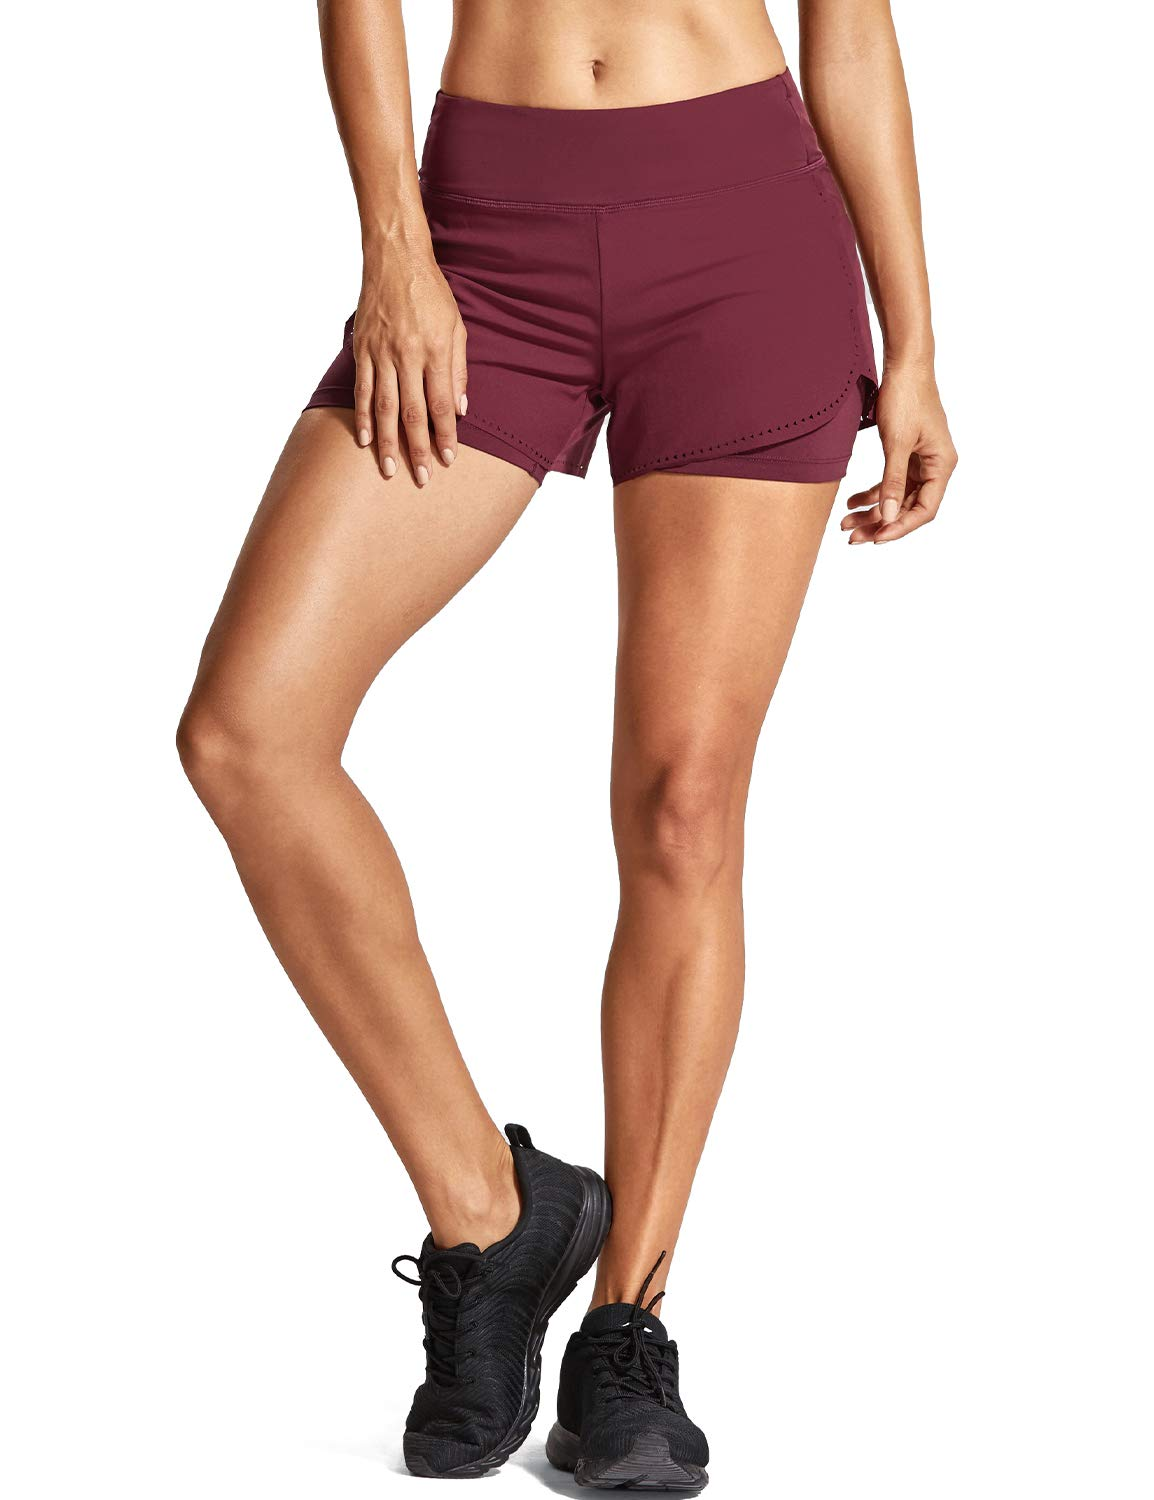 CRZ YOGA Women's Running Workout Shorts with Liner 2 in 1 Athletic Sport Shorts with Zip Pocket-4 inch Dark Red_r311_New S(4/6)